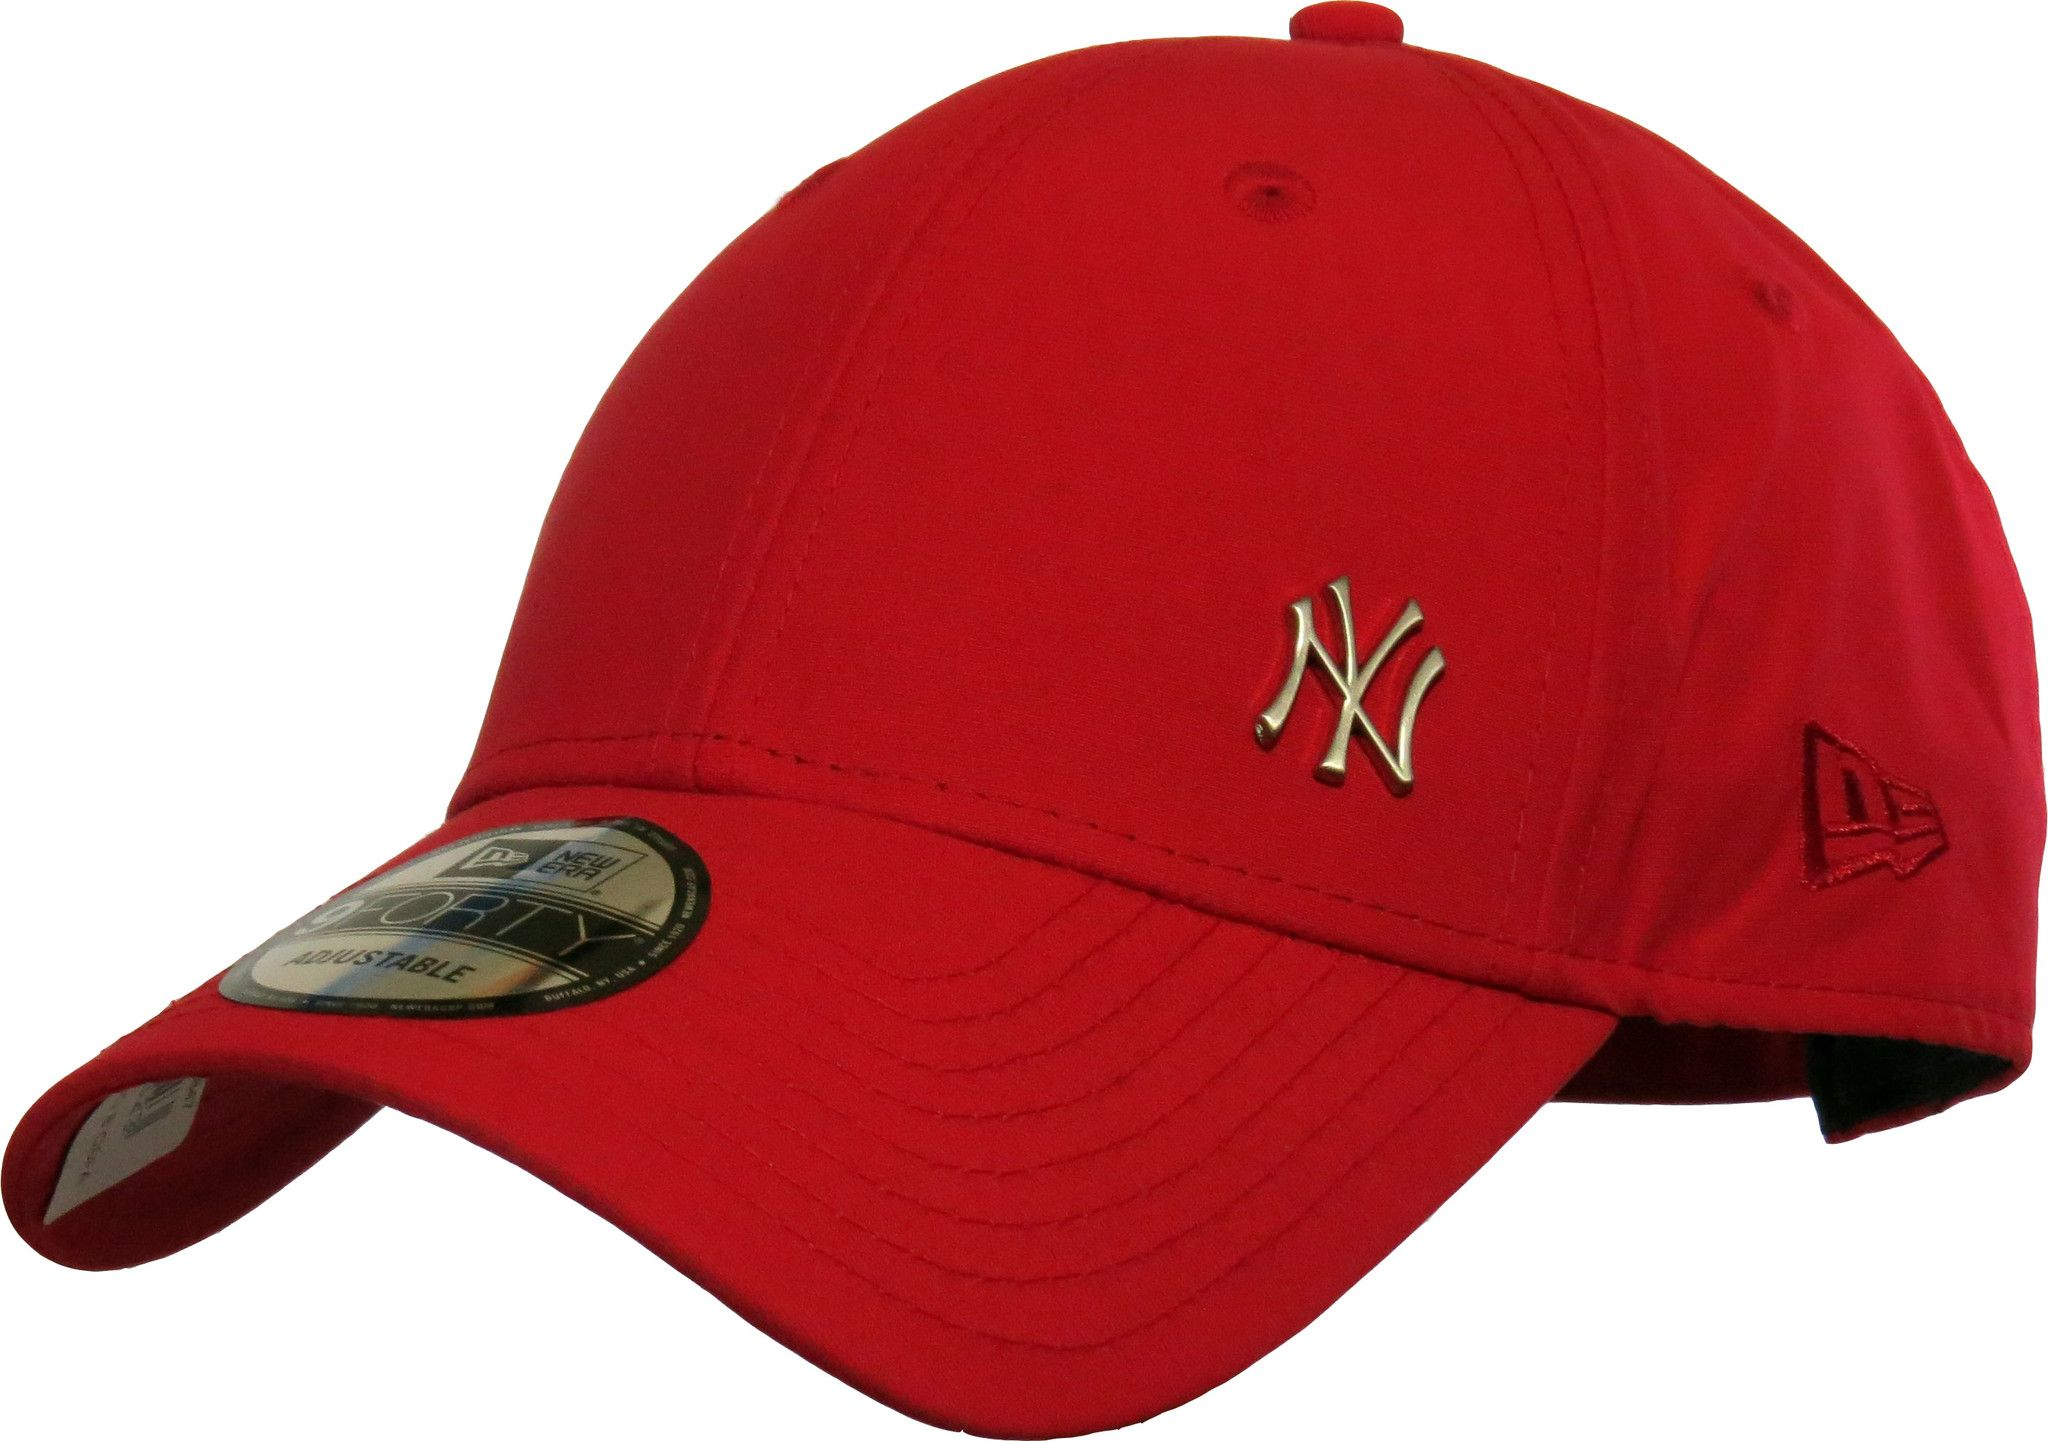 New Era 940 Flawless NY Logo Scarlet Baseball Cap  76877c1a555